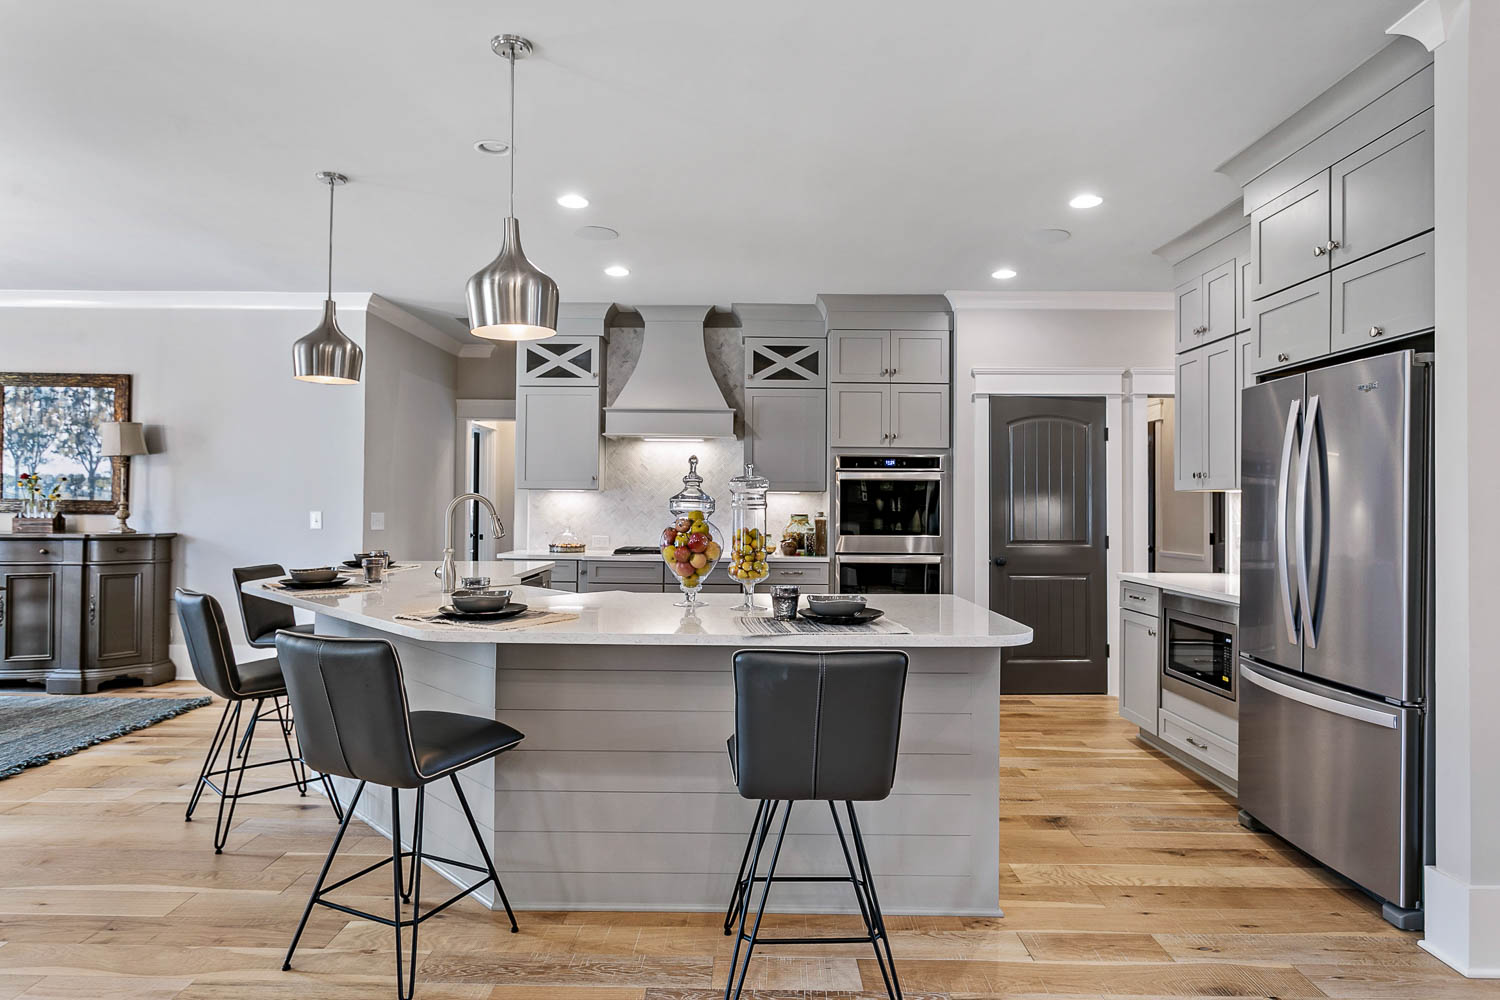 Spacious Kitchen designed by an Elegant Home Designer of Nashville's Luxury Dream Home Plans